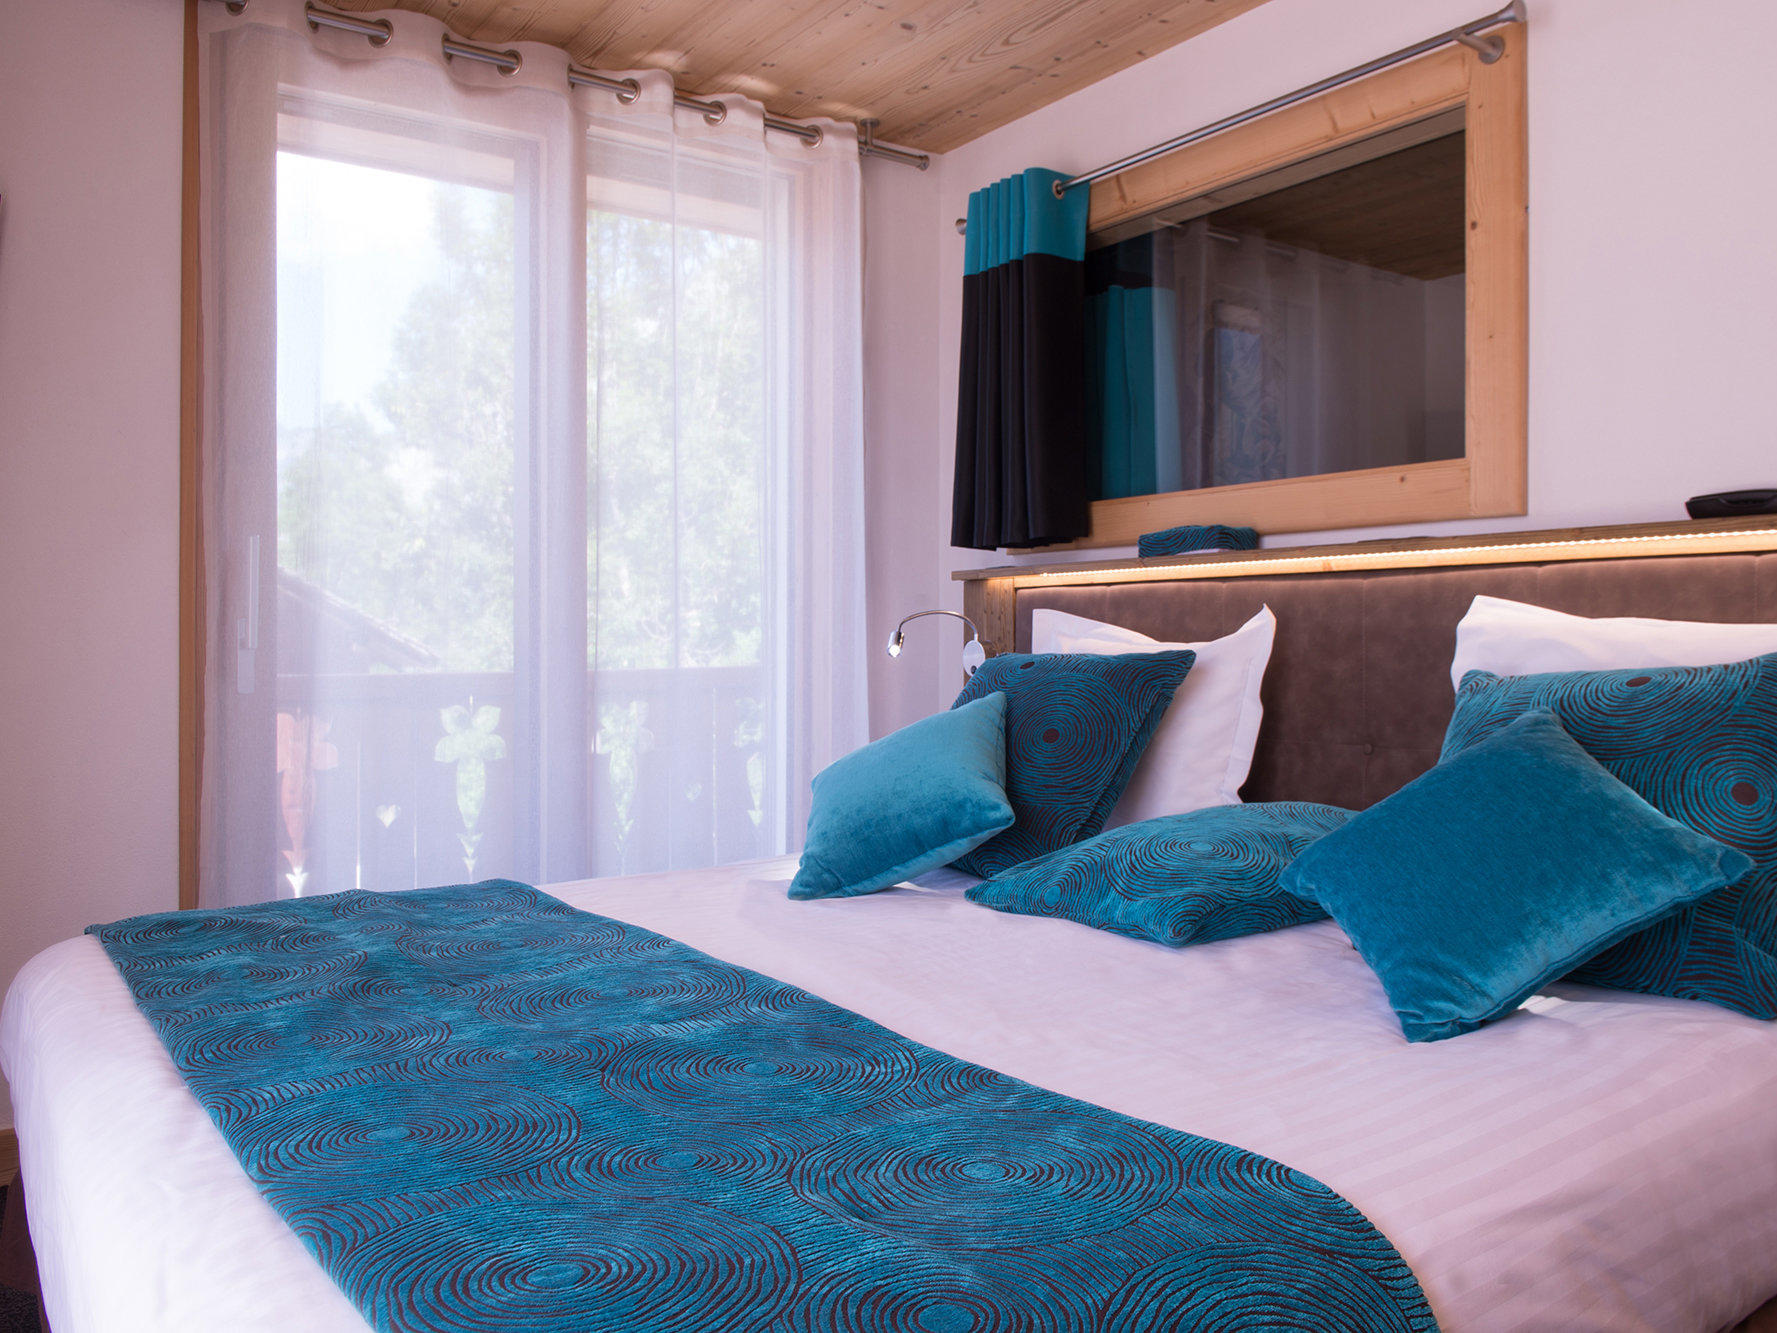 Bed in Connecting Family Room at Hotel Gentianettes, The Originals Relais